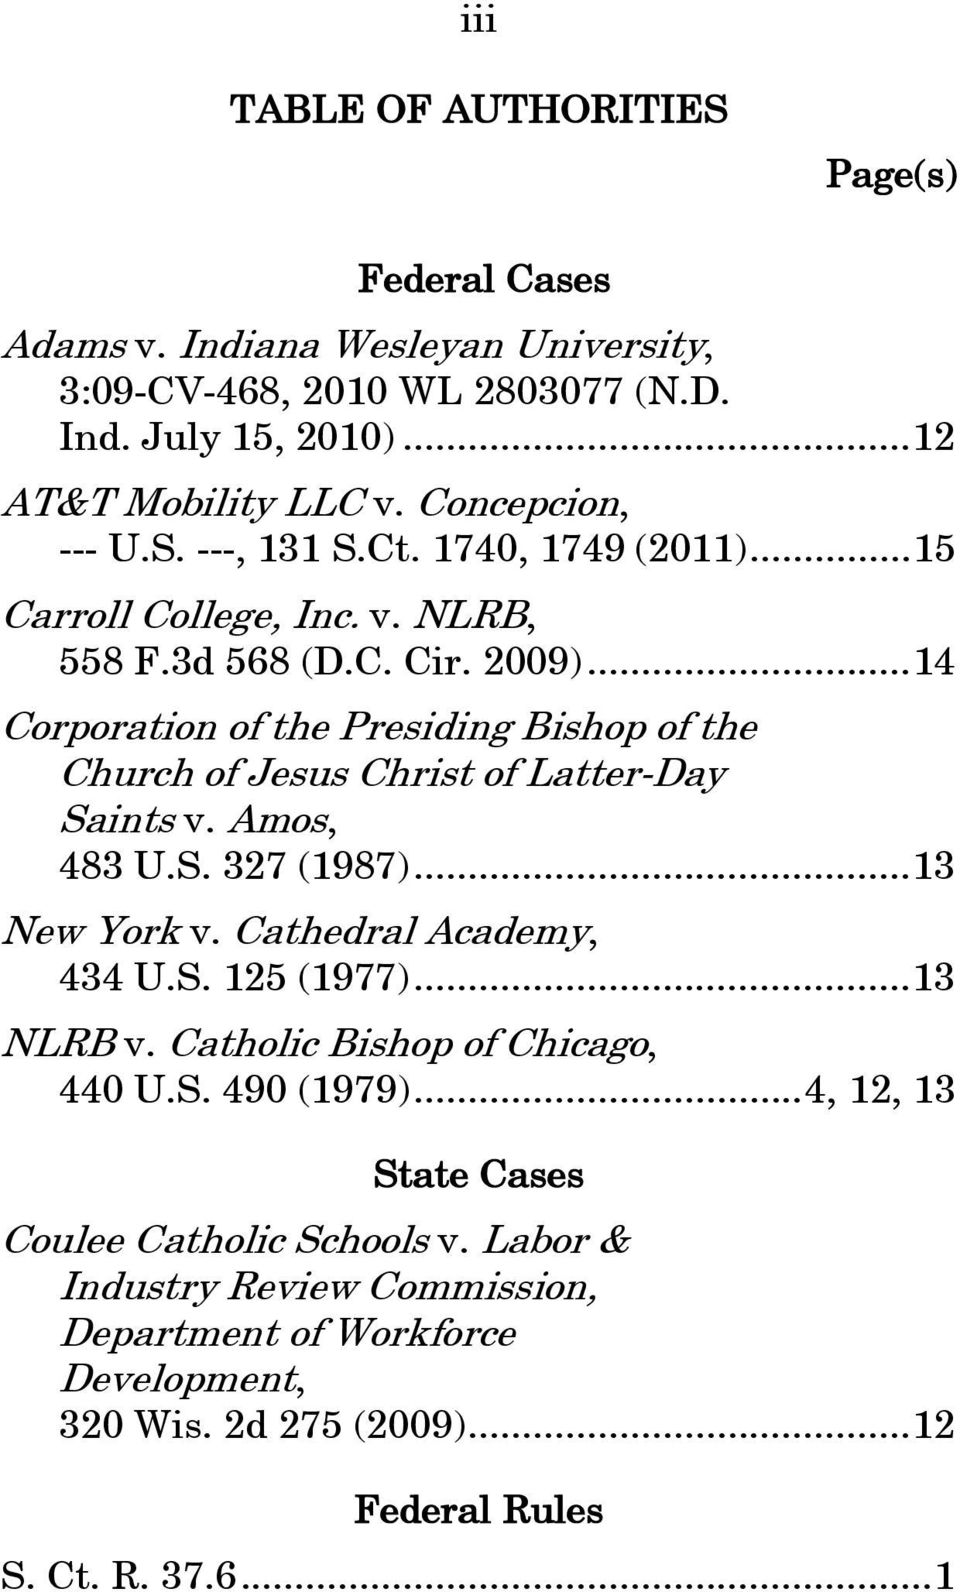 ..14 Corporation of the Presiding Bishop of the Church of Jesus Christ of Latter-Day Saints v. Amos, 483 U.S. 327 (1987)...13 New York v. Cathedral Academy, 434 U.S. 125 (1977).